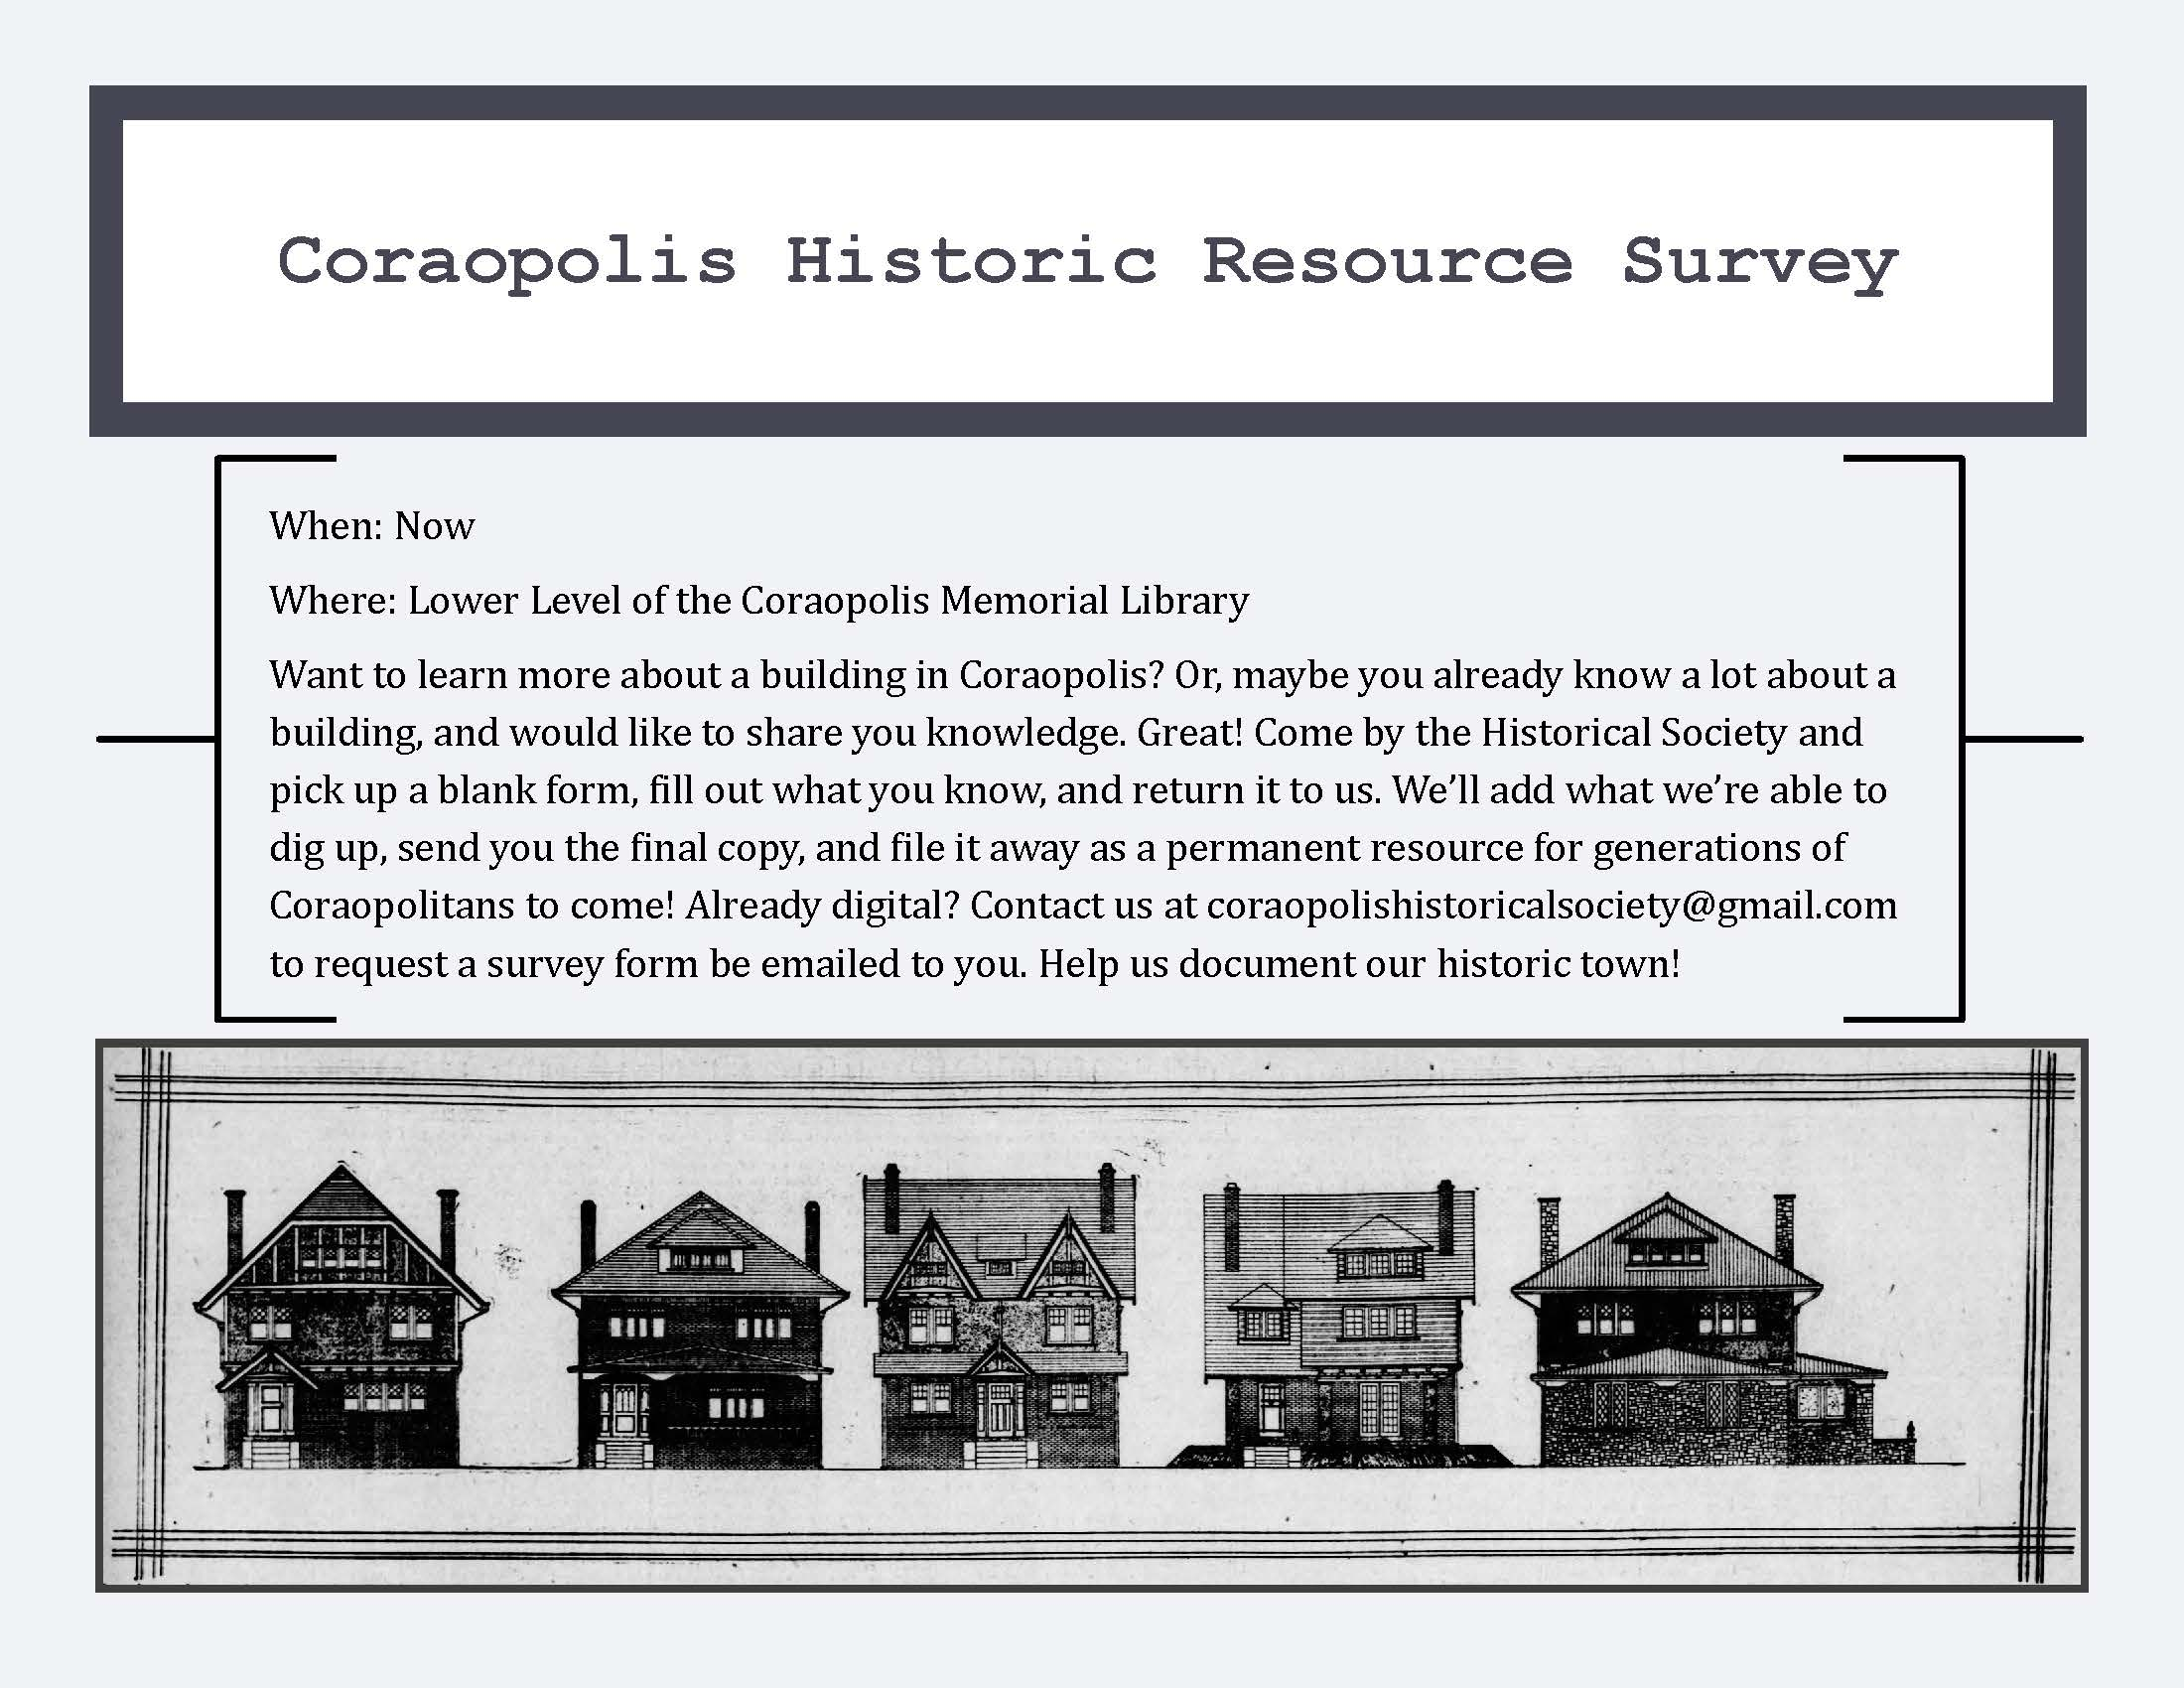 Coraopolis Historical Resource Survey Flyer.jpg